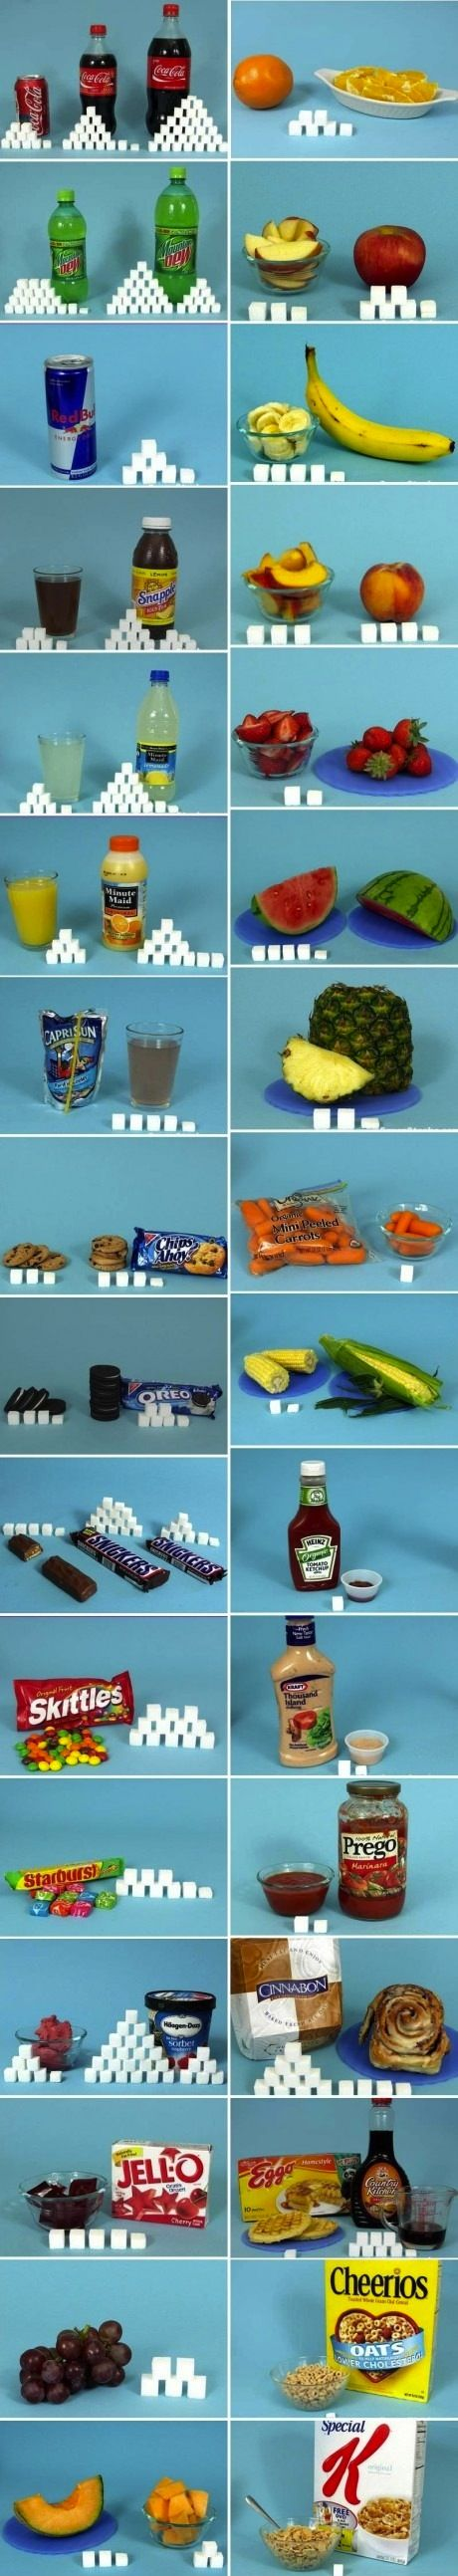 The amount of sugar in food.